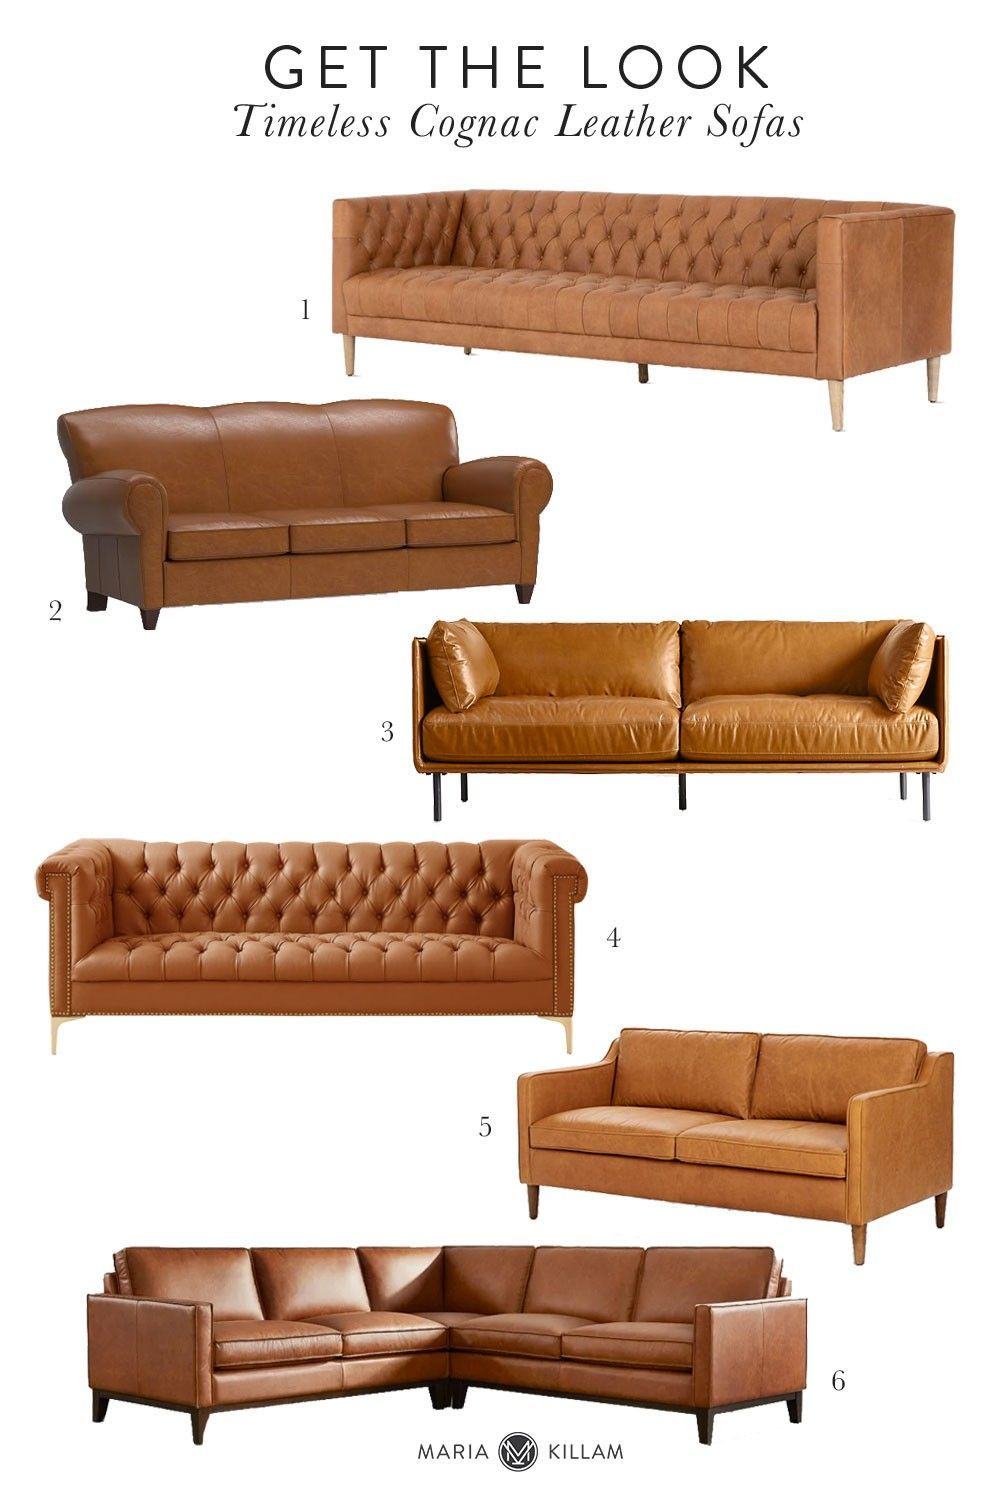 Is A Cognac Leather Sofa Timeless Or Trendy Yay Or Nay In 2021 Cognac Leather Sofa Leather Sofa Timeless Sofa What color is cognac leather